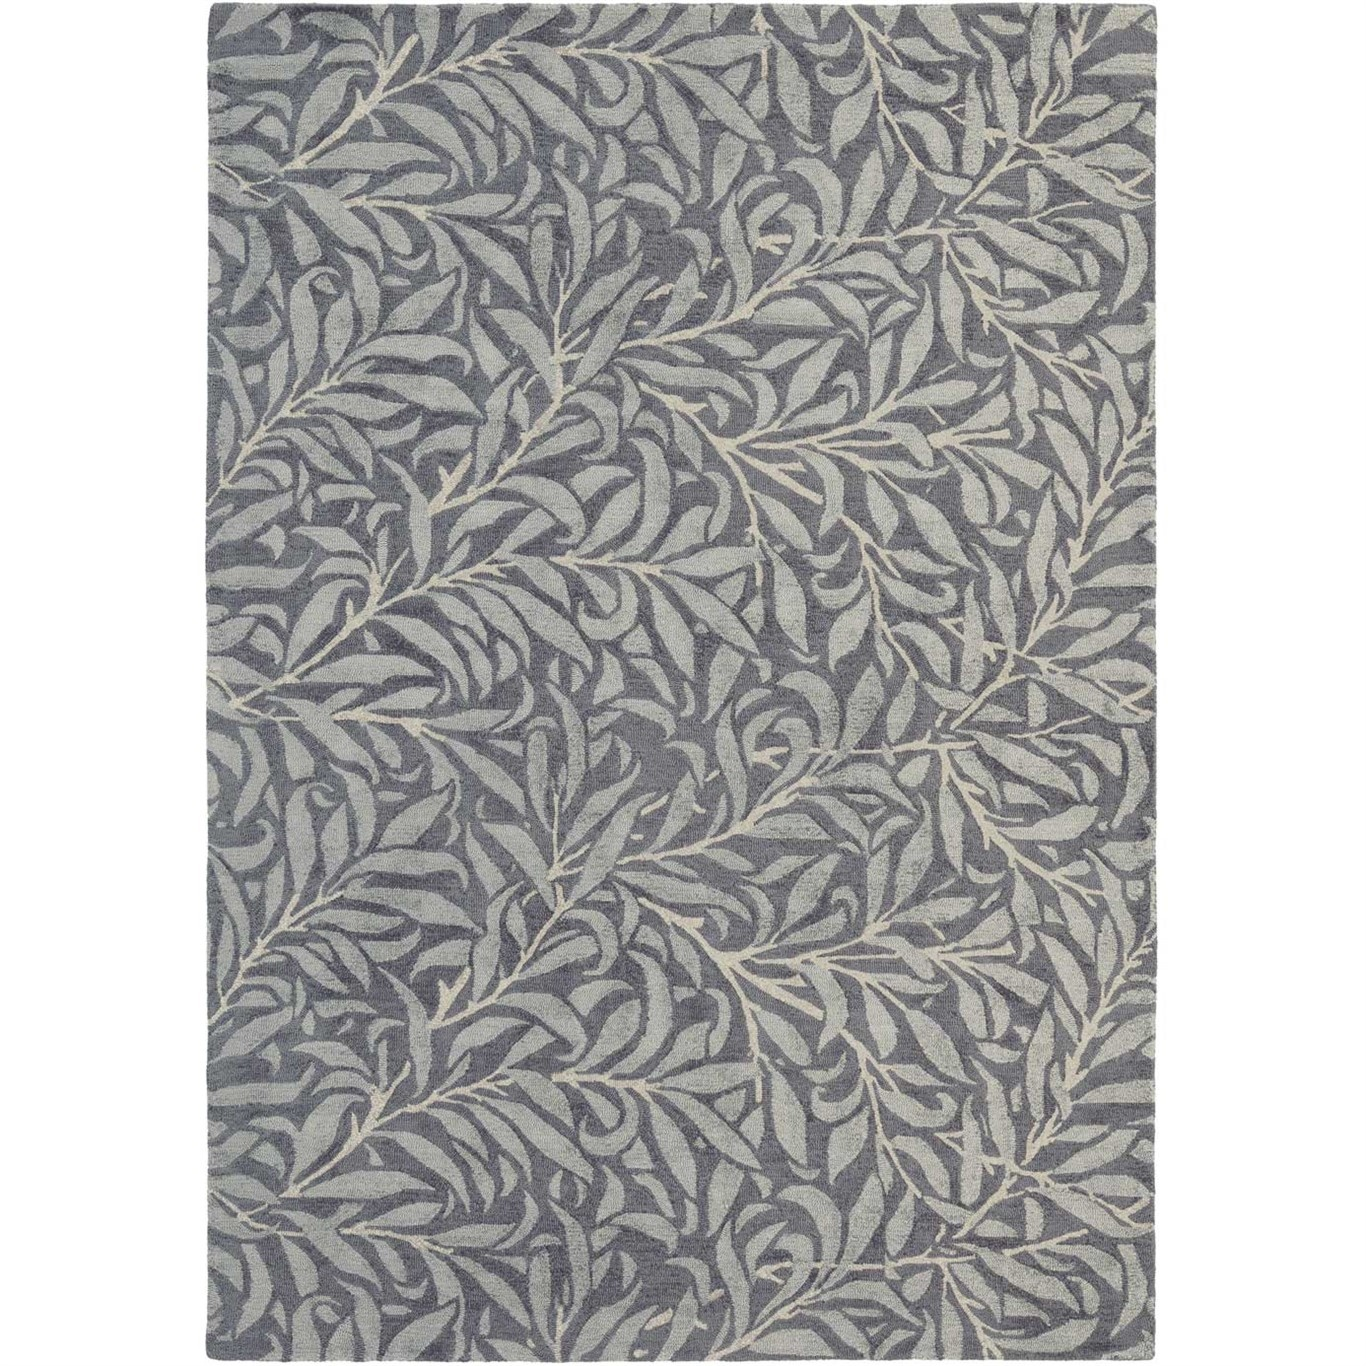 Image of Morris & Co Willow Bough Charcoal Rug 28305